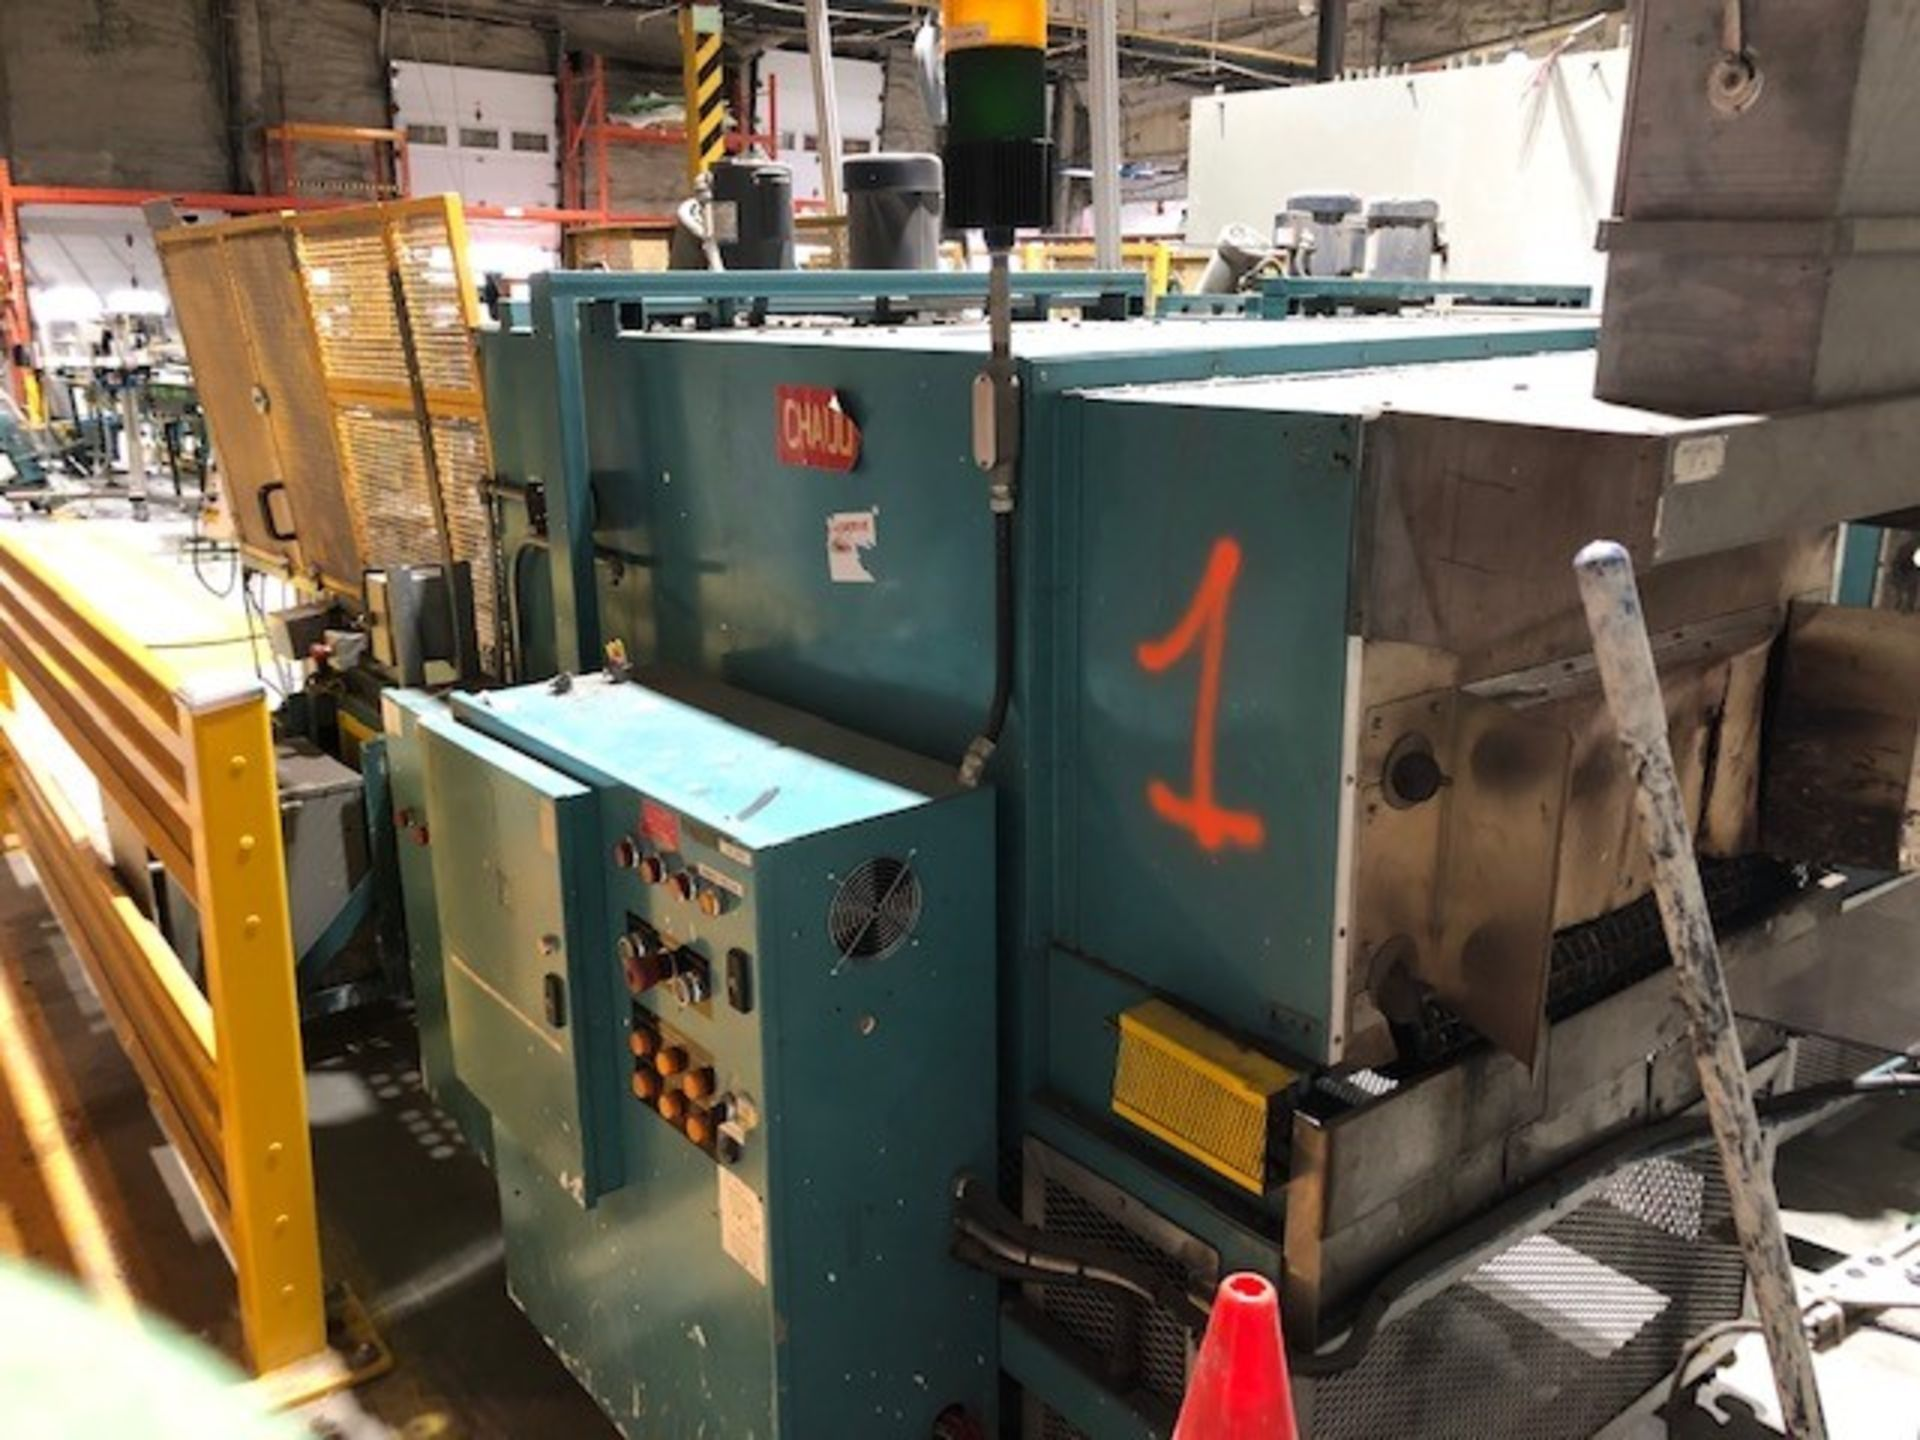 Lot 32 - Plastic shrink wrapper applicator and heating tunnel #1 Ideal Equipment, model: 1830, s/n: 1295060